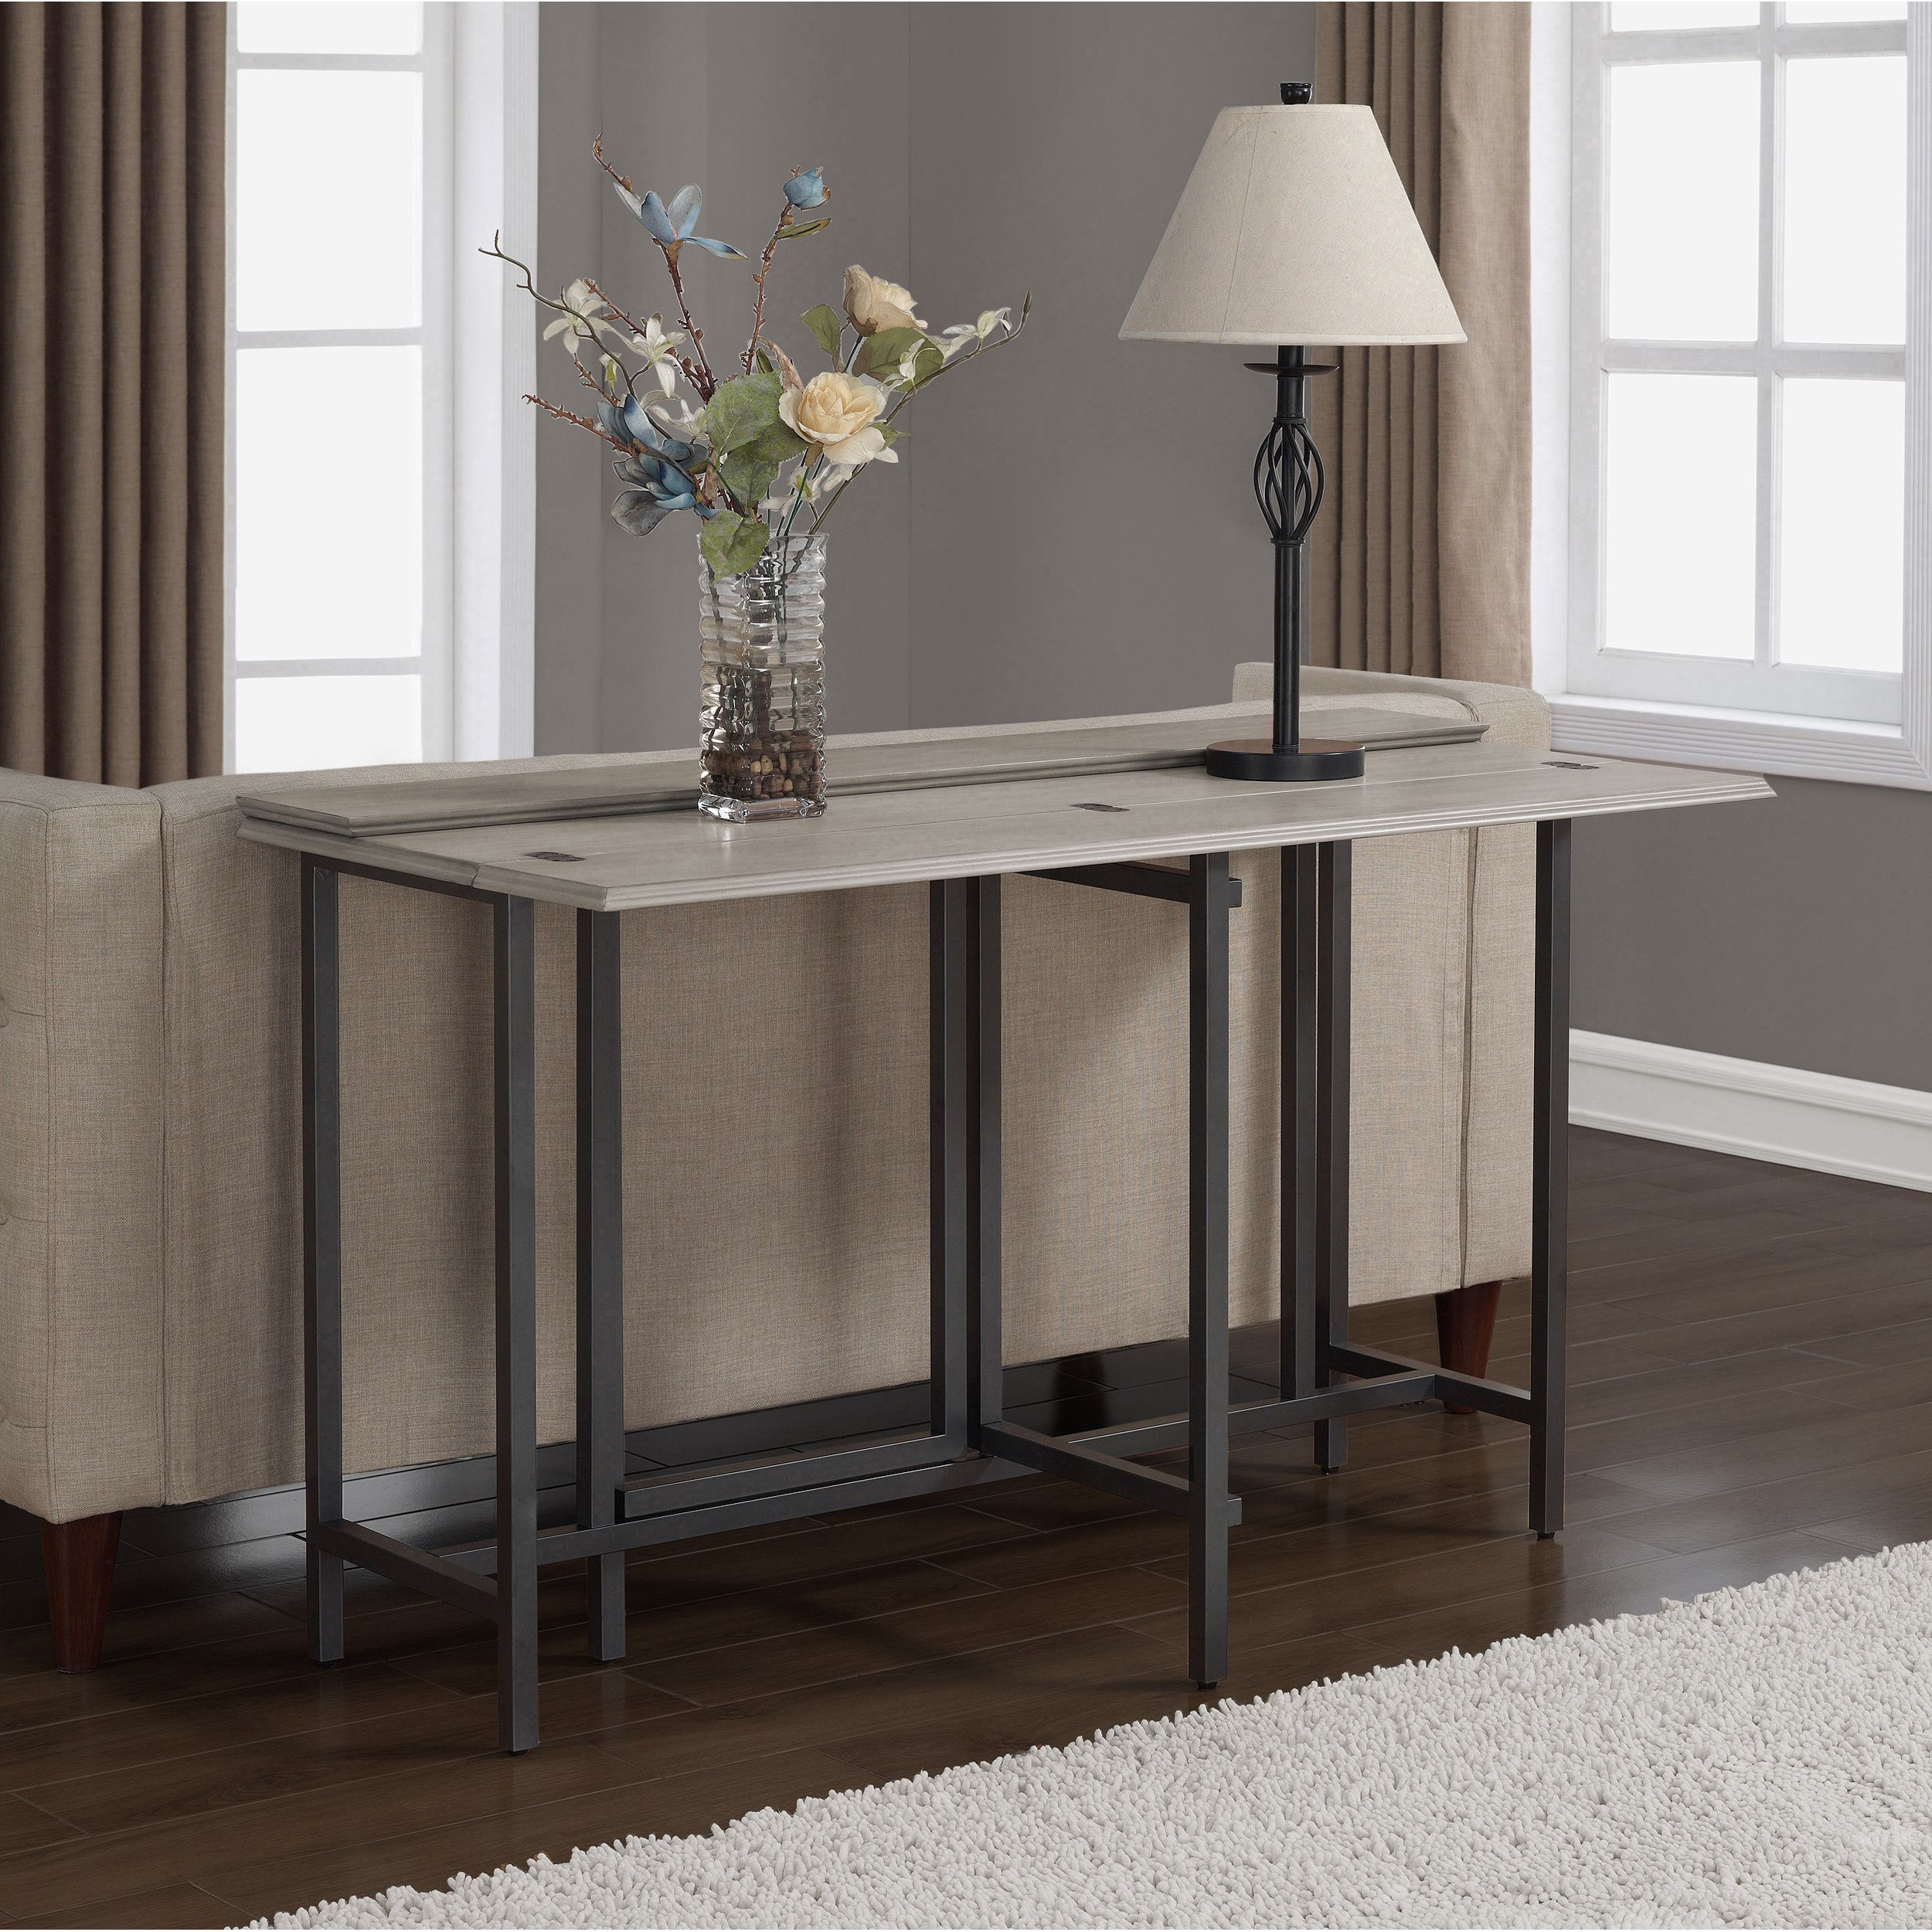 This expandable sofa table with its clean lines and fresh look is an updated version of the old gateleg tables its beautiful grey top unfolds to go from